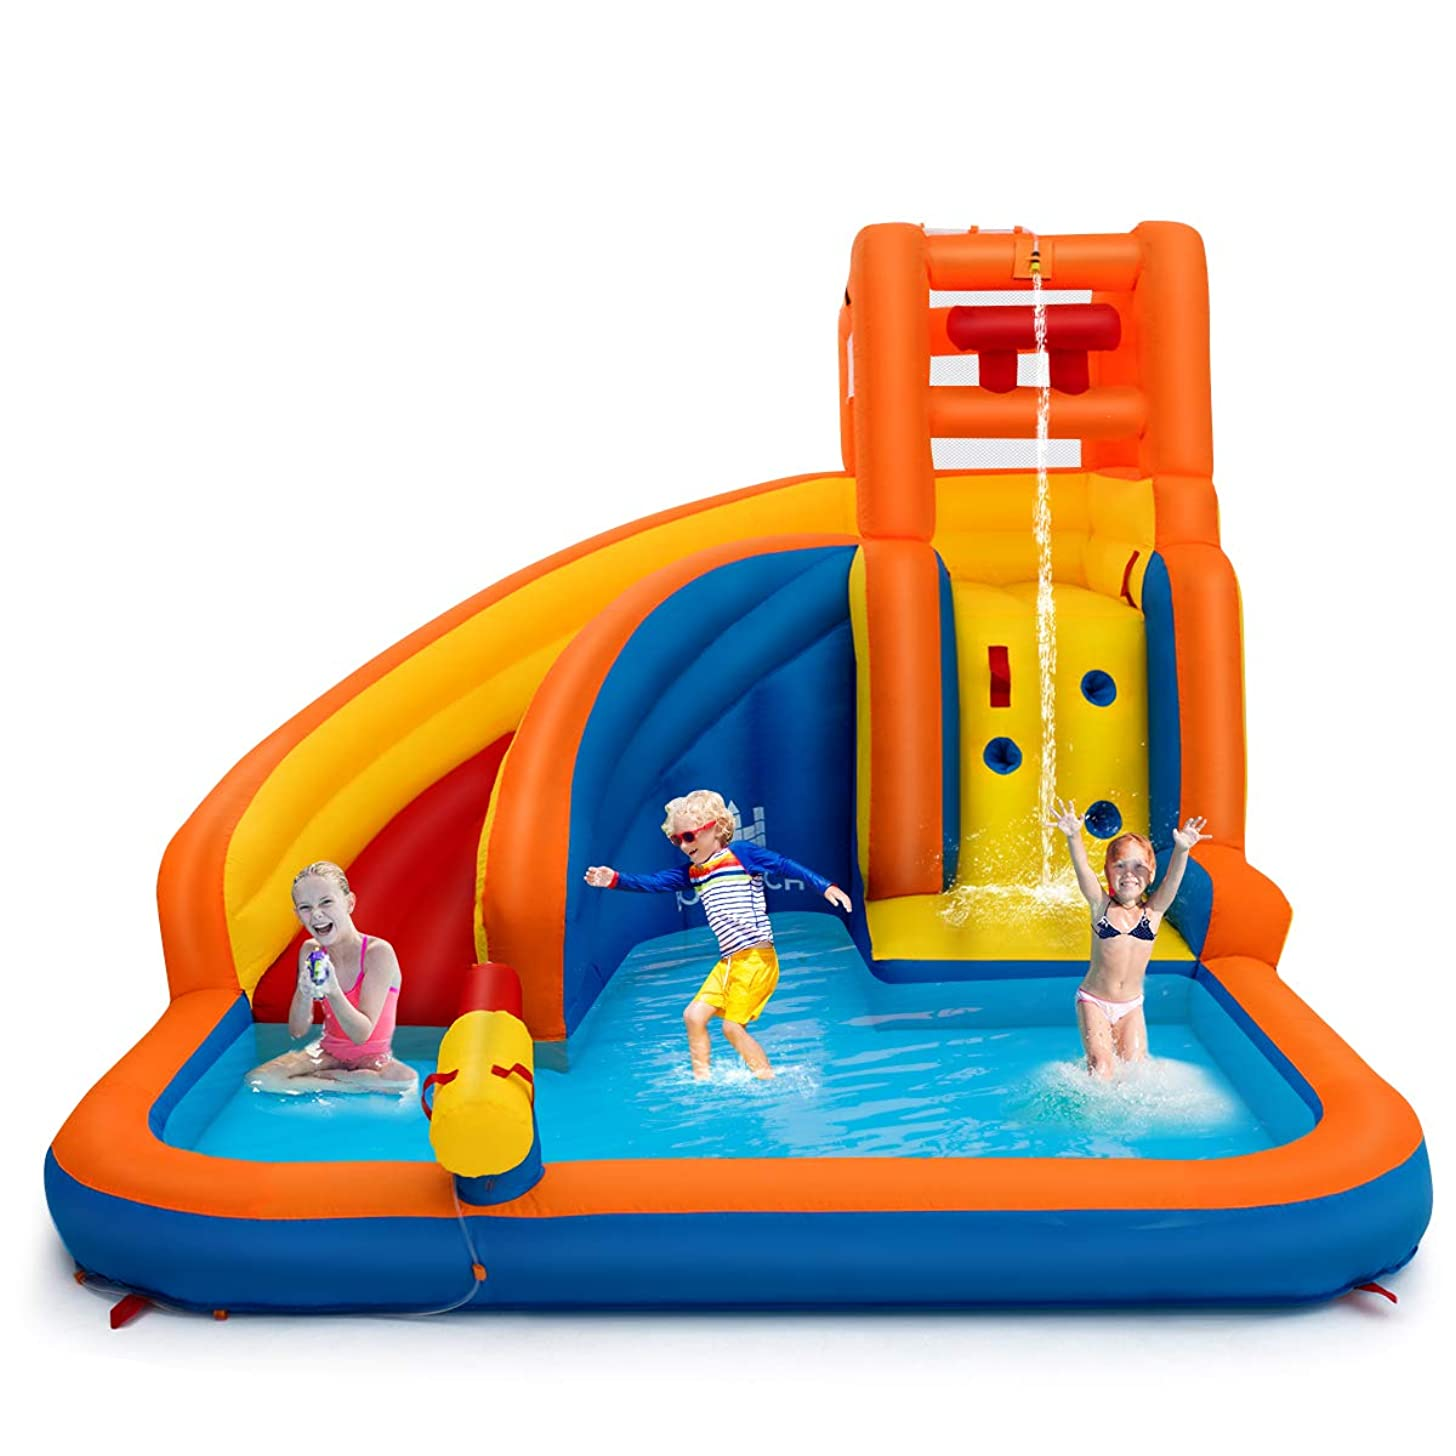 Costzon Inflatable Water Slide, 5-in-1 Kids Bouncer w/ Climbing Wall, Splash Pool, Water Cannon, Pouring Sink, Including Oxford Carry Bag, Repairing Kit, Stakes, Hose (Without Blower)